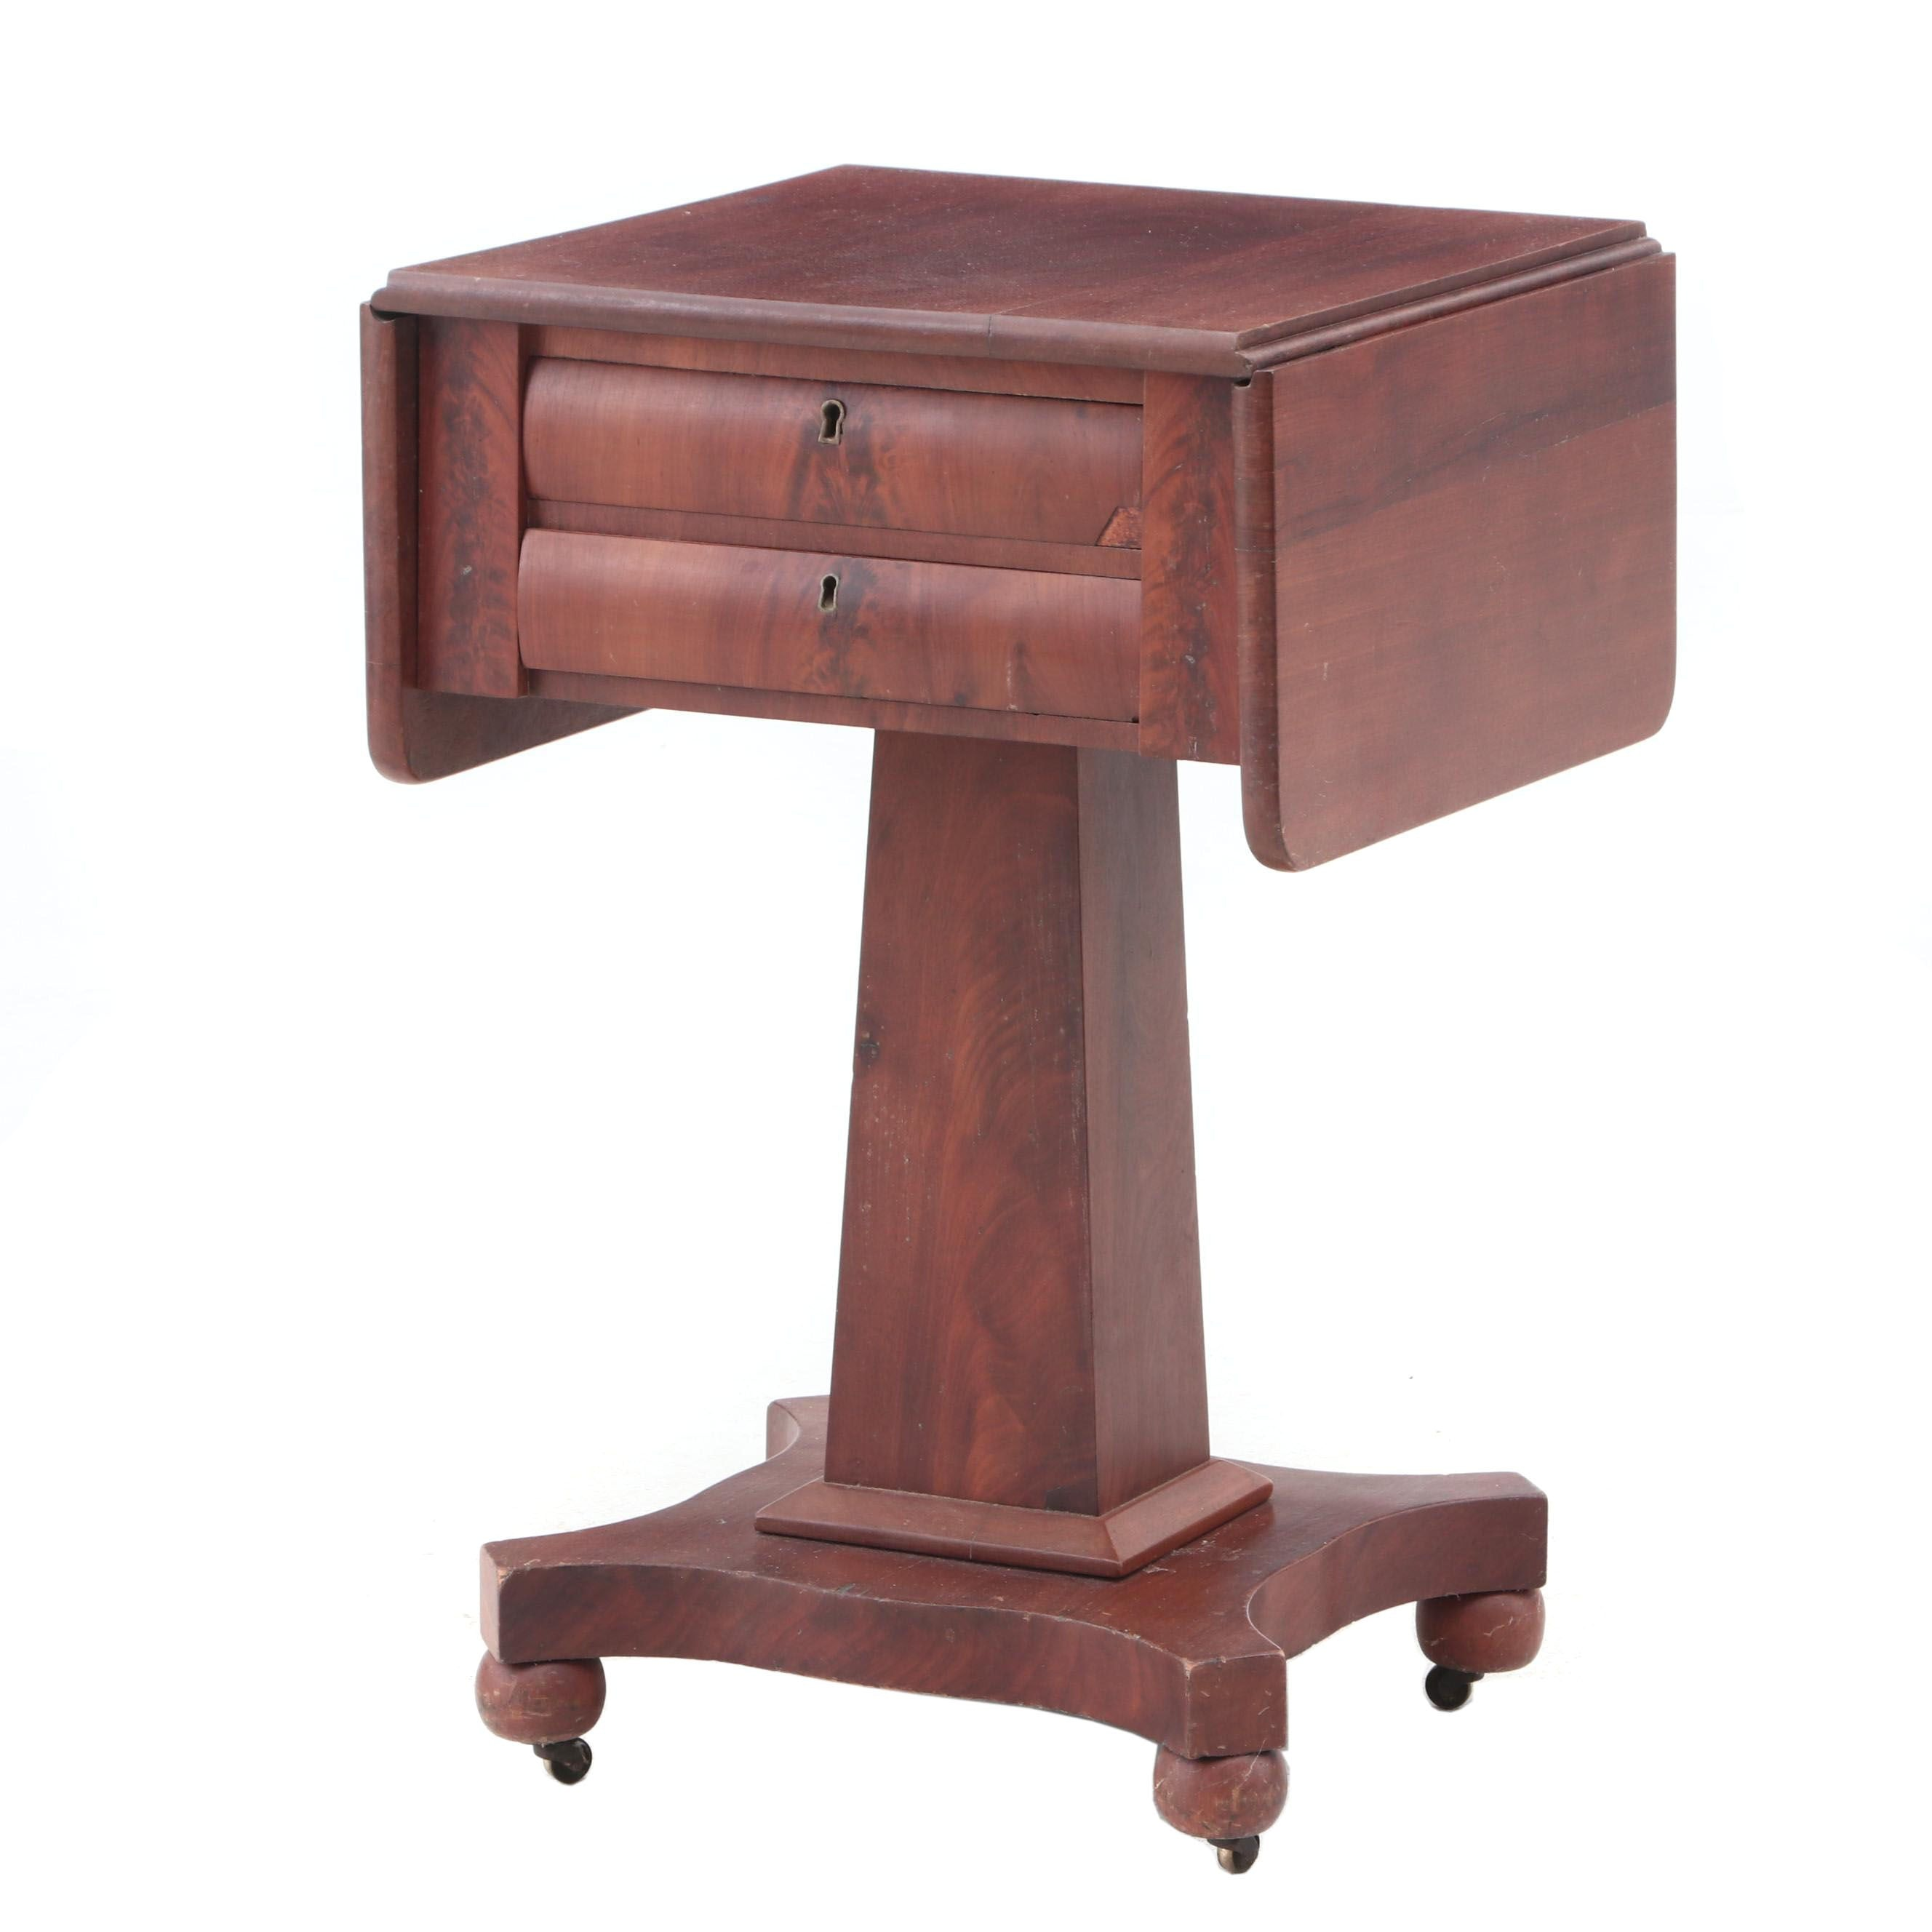 Empire Work Table with Drop Leaves, circa 1840